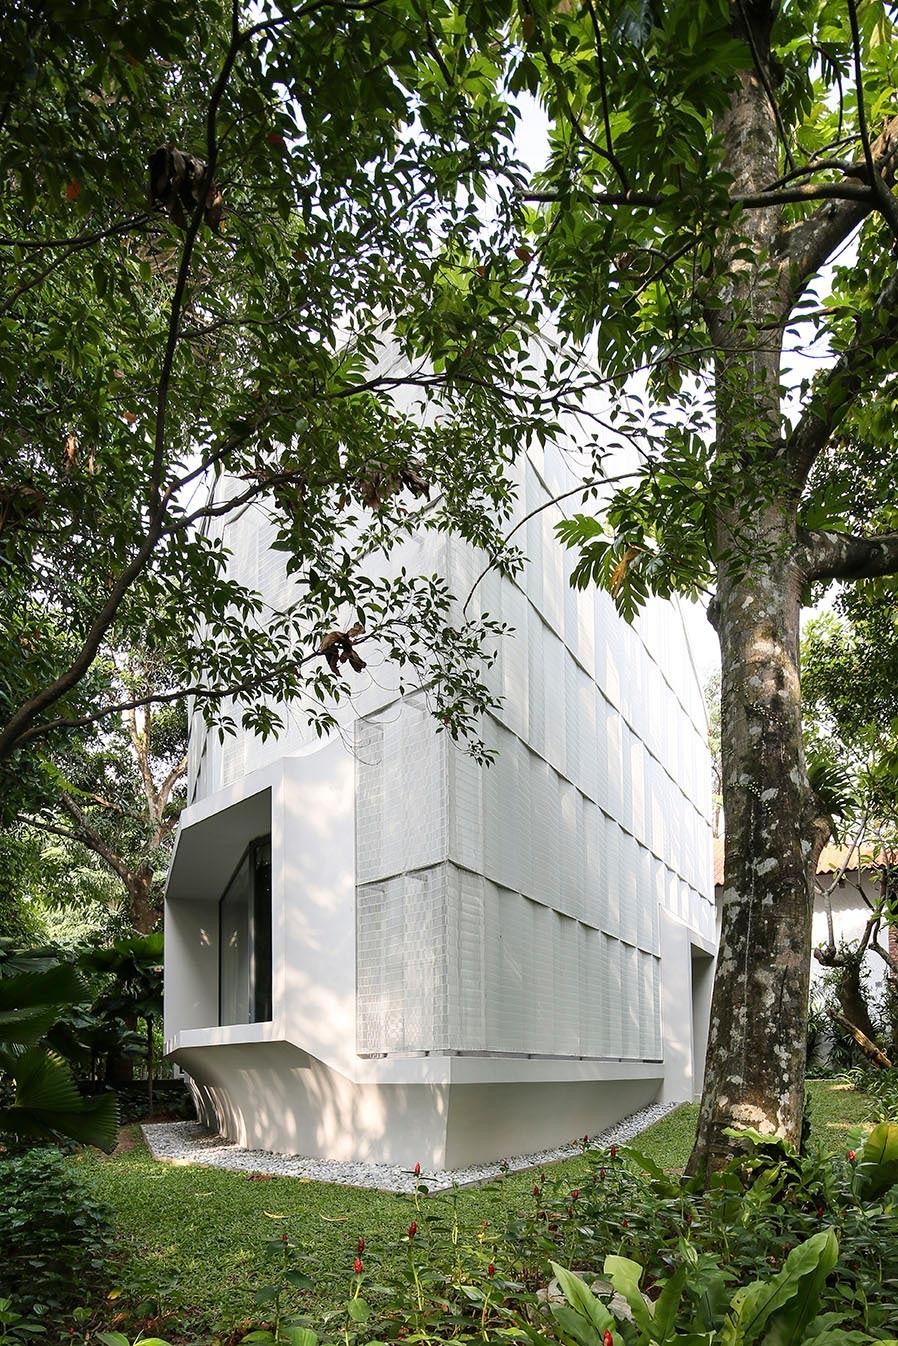 Hut House in the Holland Village neighbourhood of Singapore, covered in folded aluminium